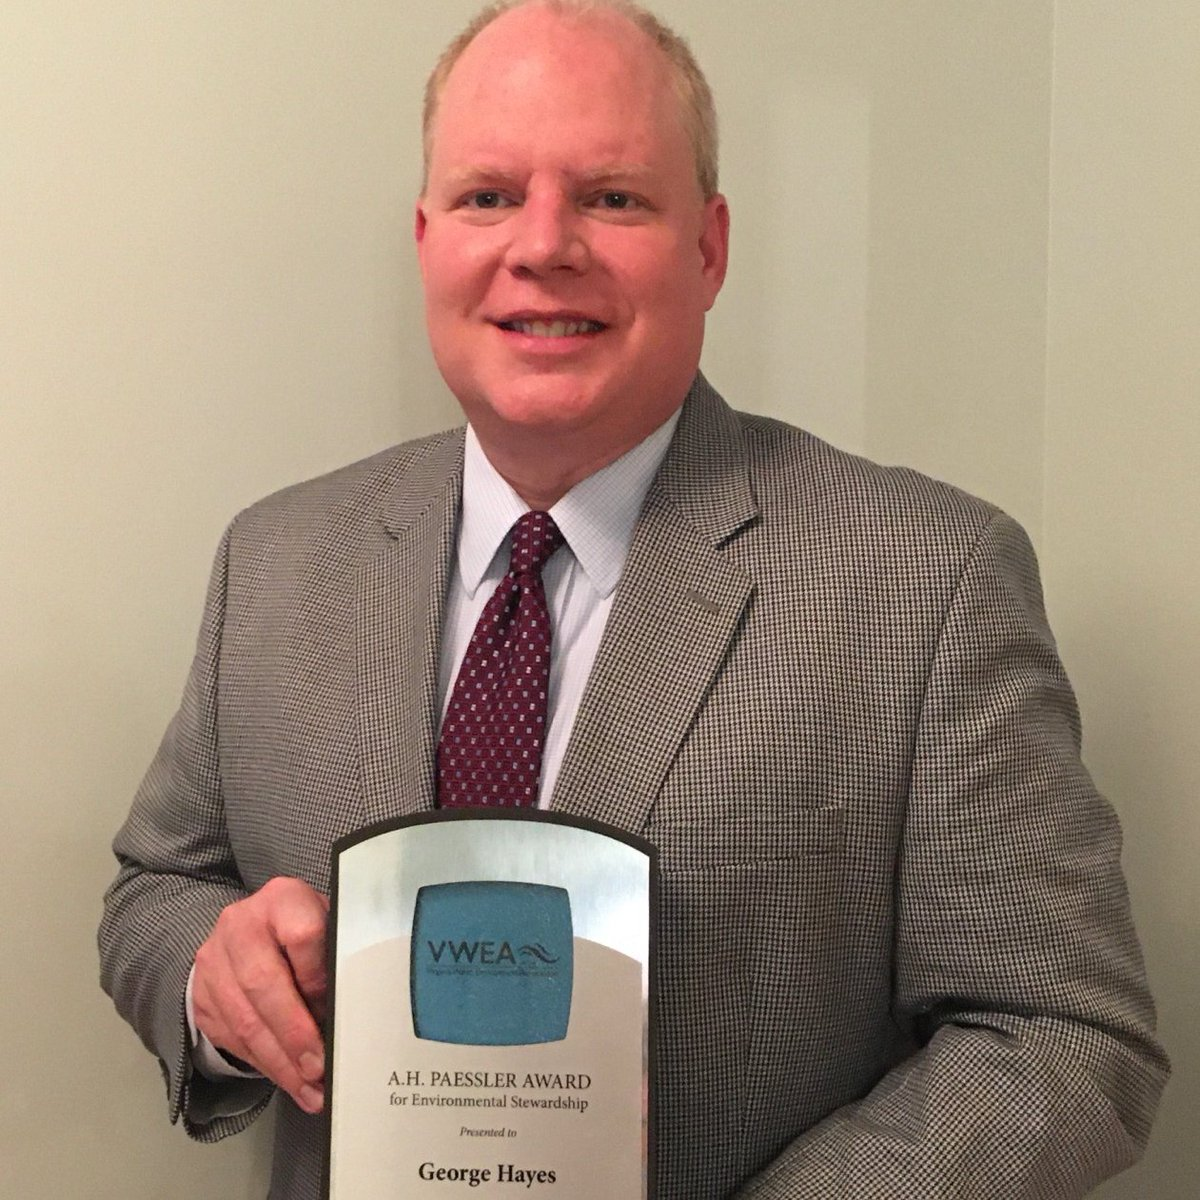 Congrats to Utilities Director George Hayes for being awarded the A.H. Paessler Award from the Virginia Water Environment Association. This is the first time a #Cfield employee was presented with this distinguished award, which is only presented once a year to a single recipient.